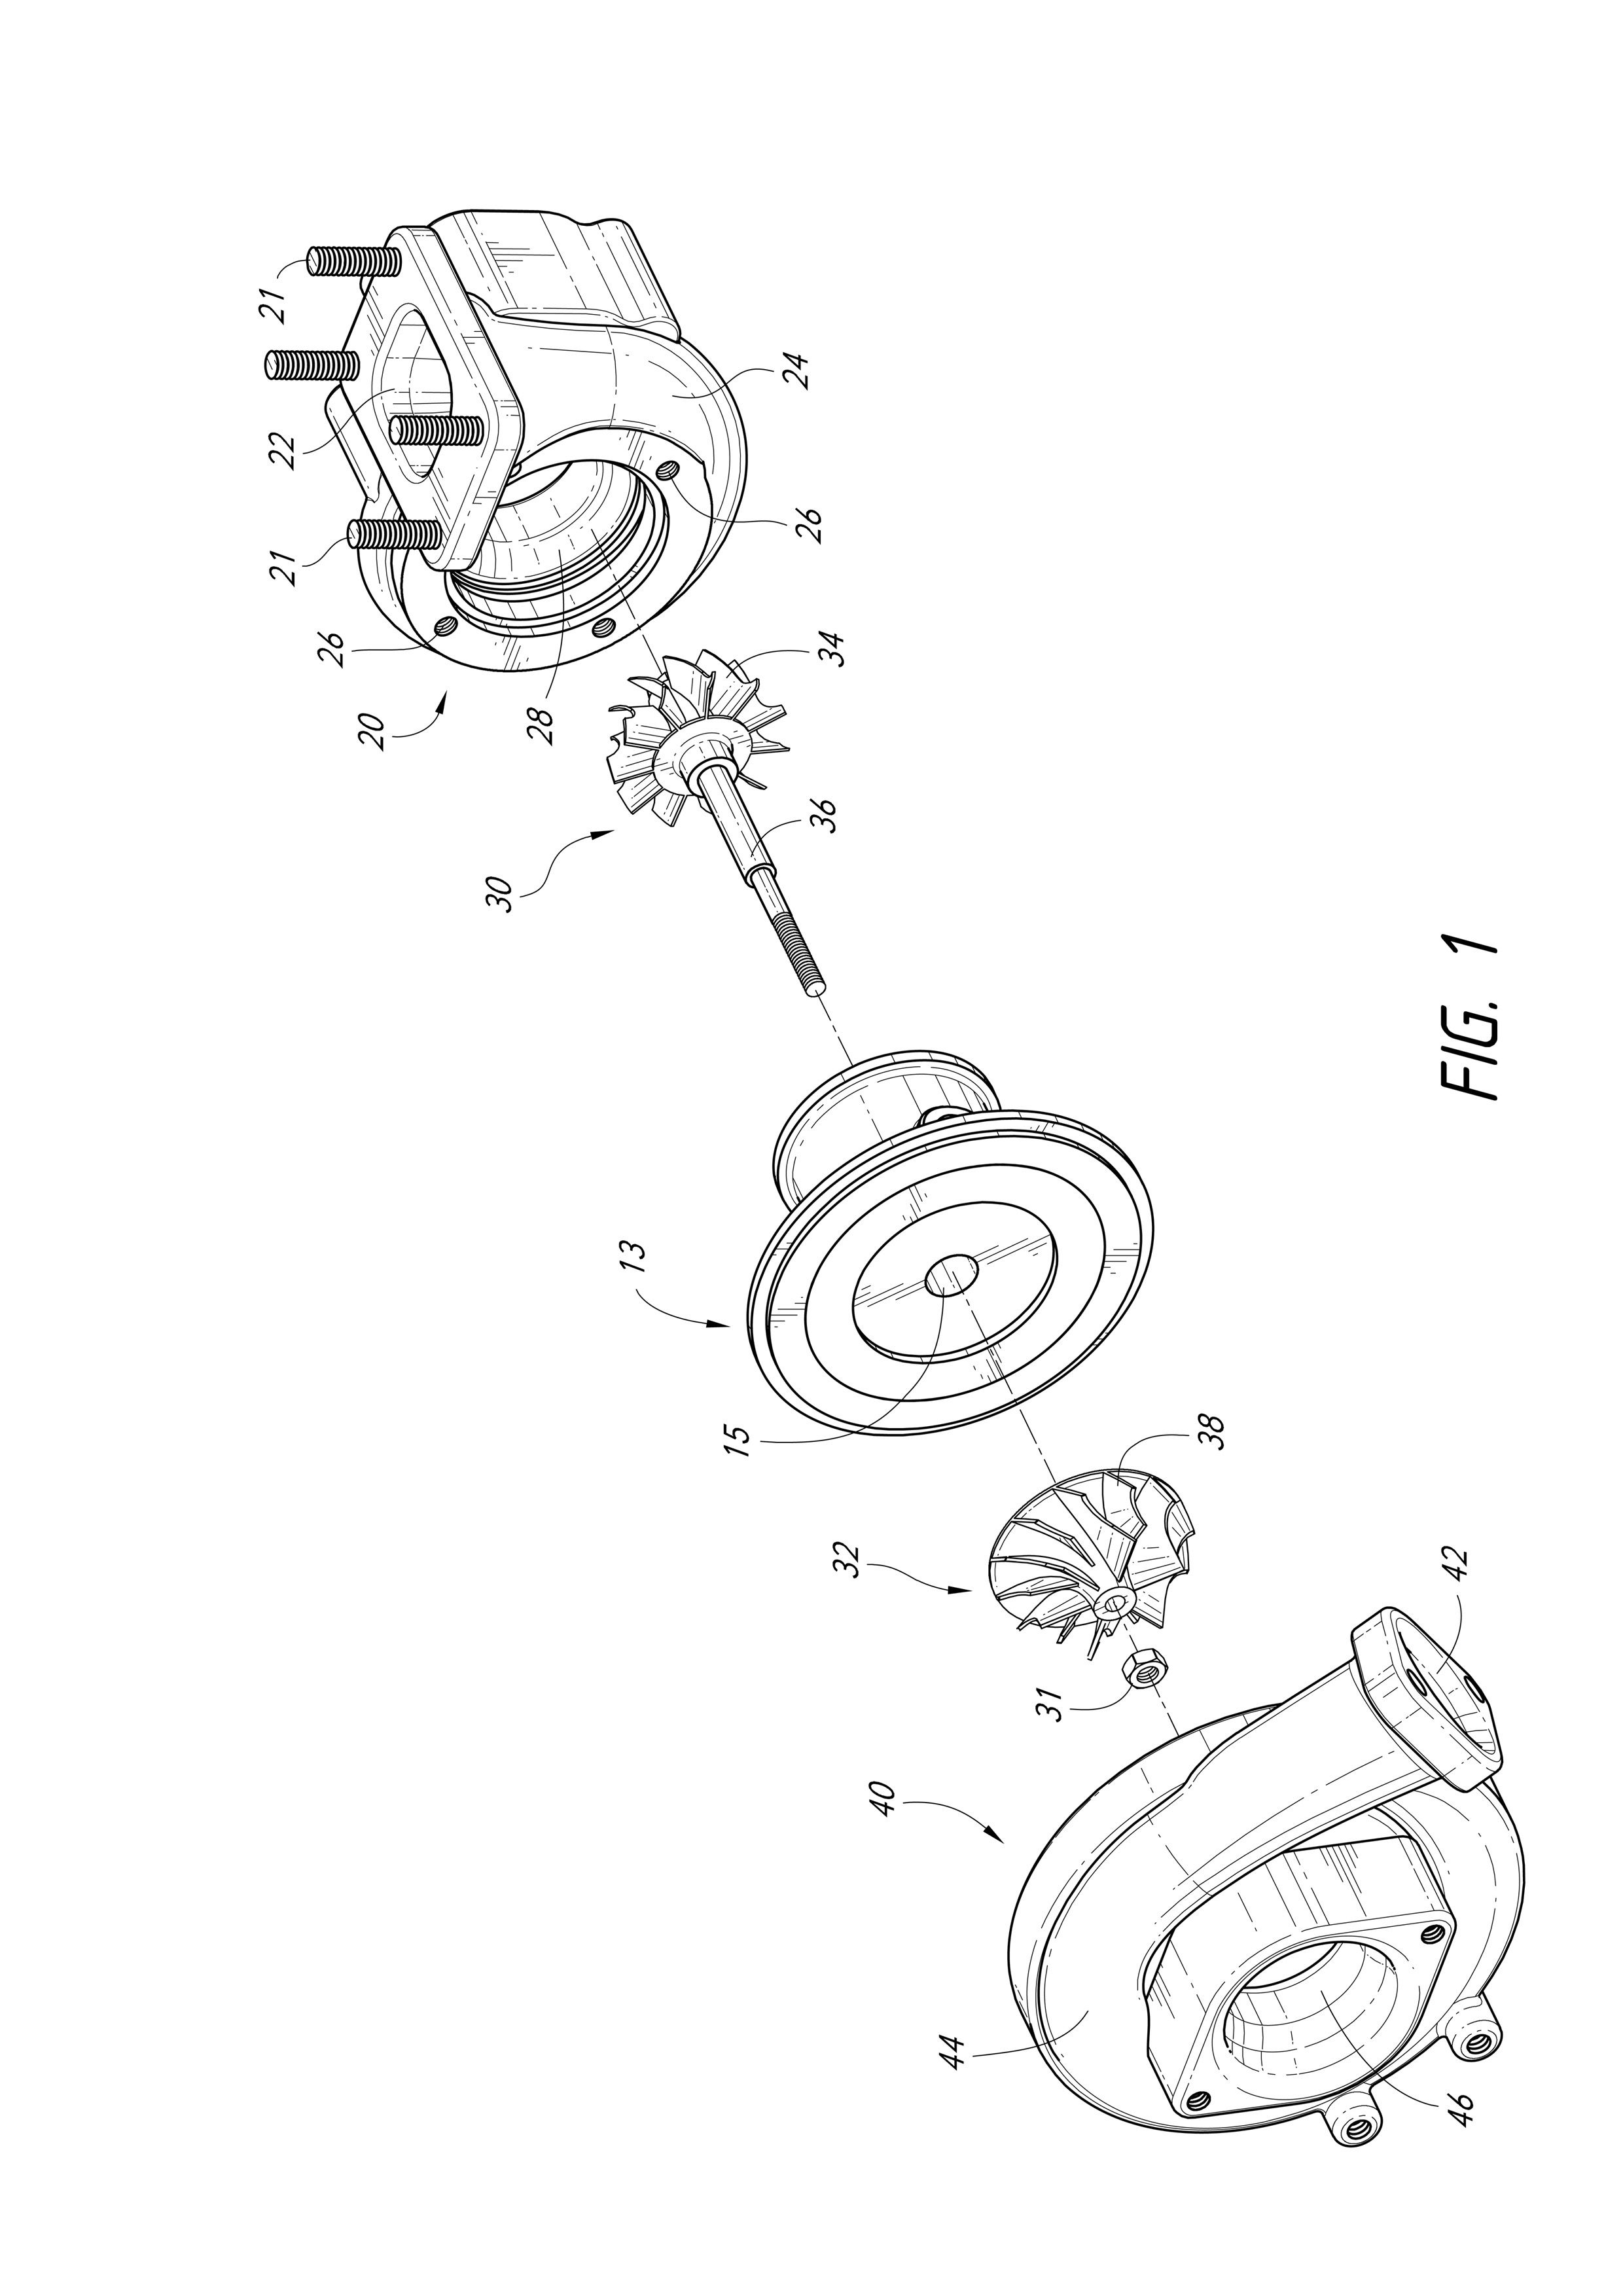 small resolution of exploded view of a turbo charger